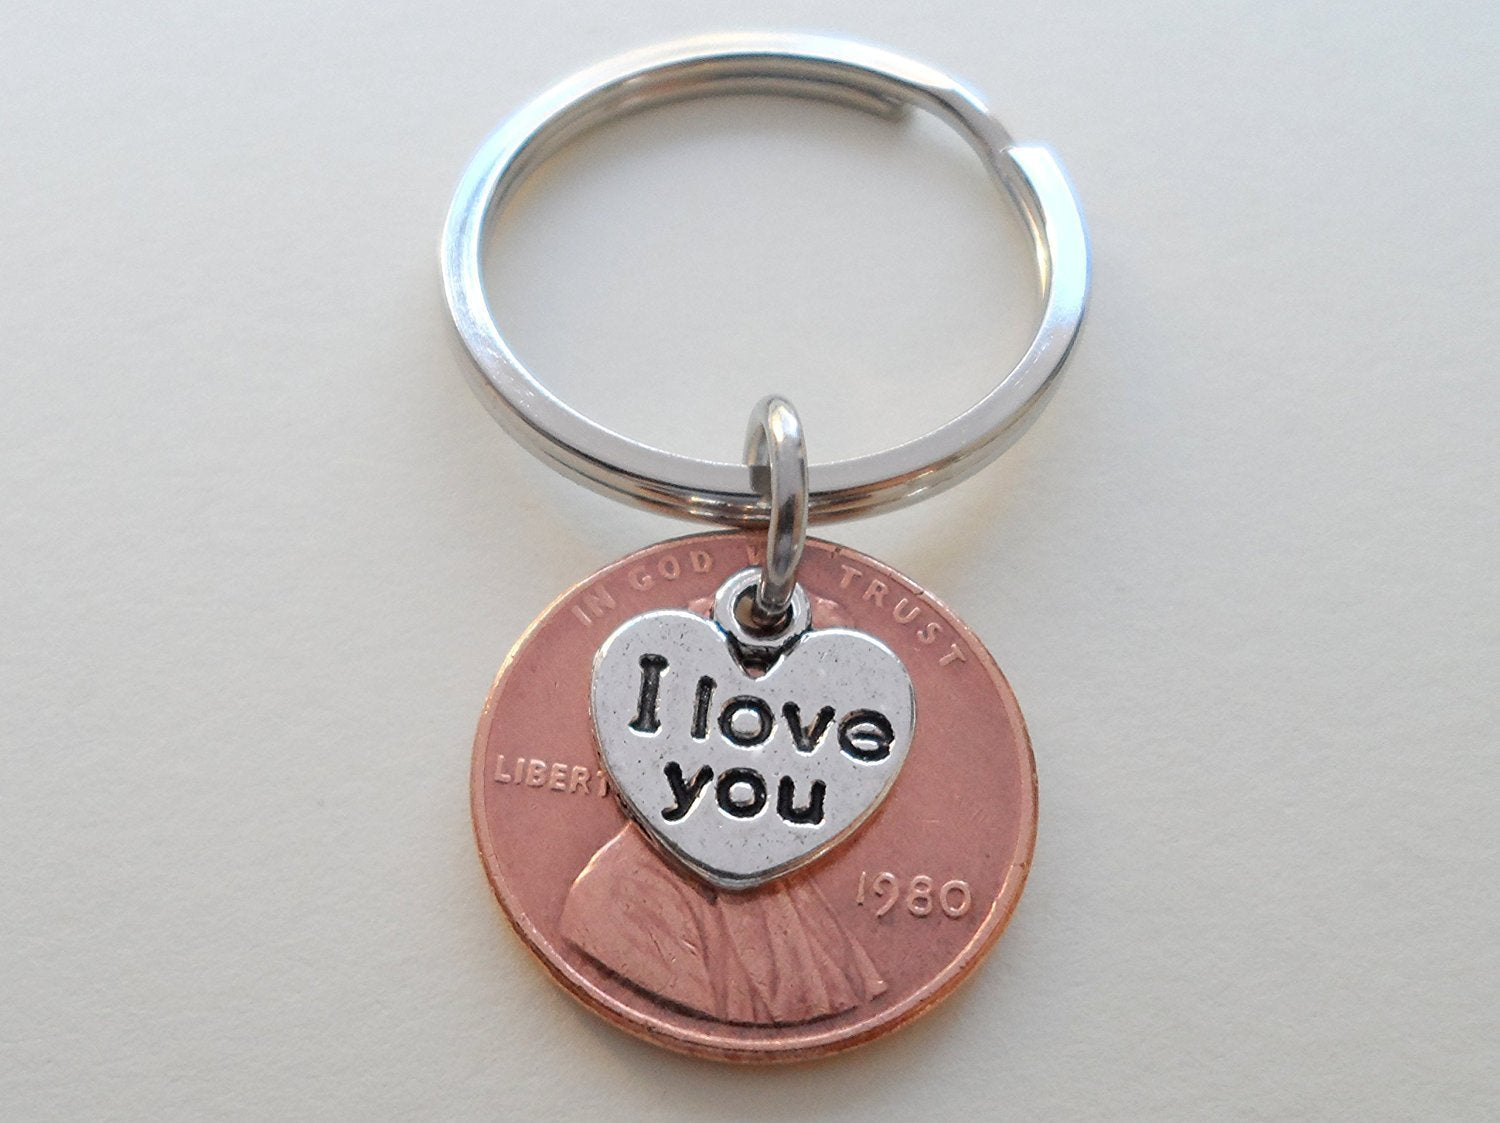 I Love You Heart Charm Layered Over 1980 Penny Keychain